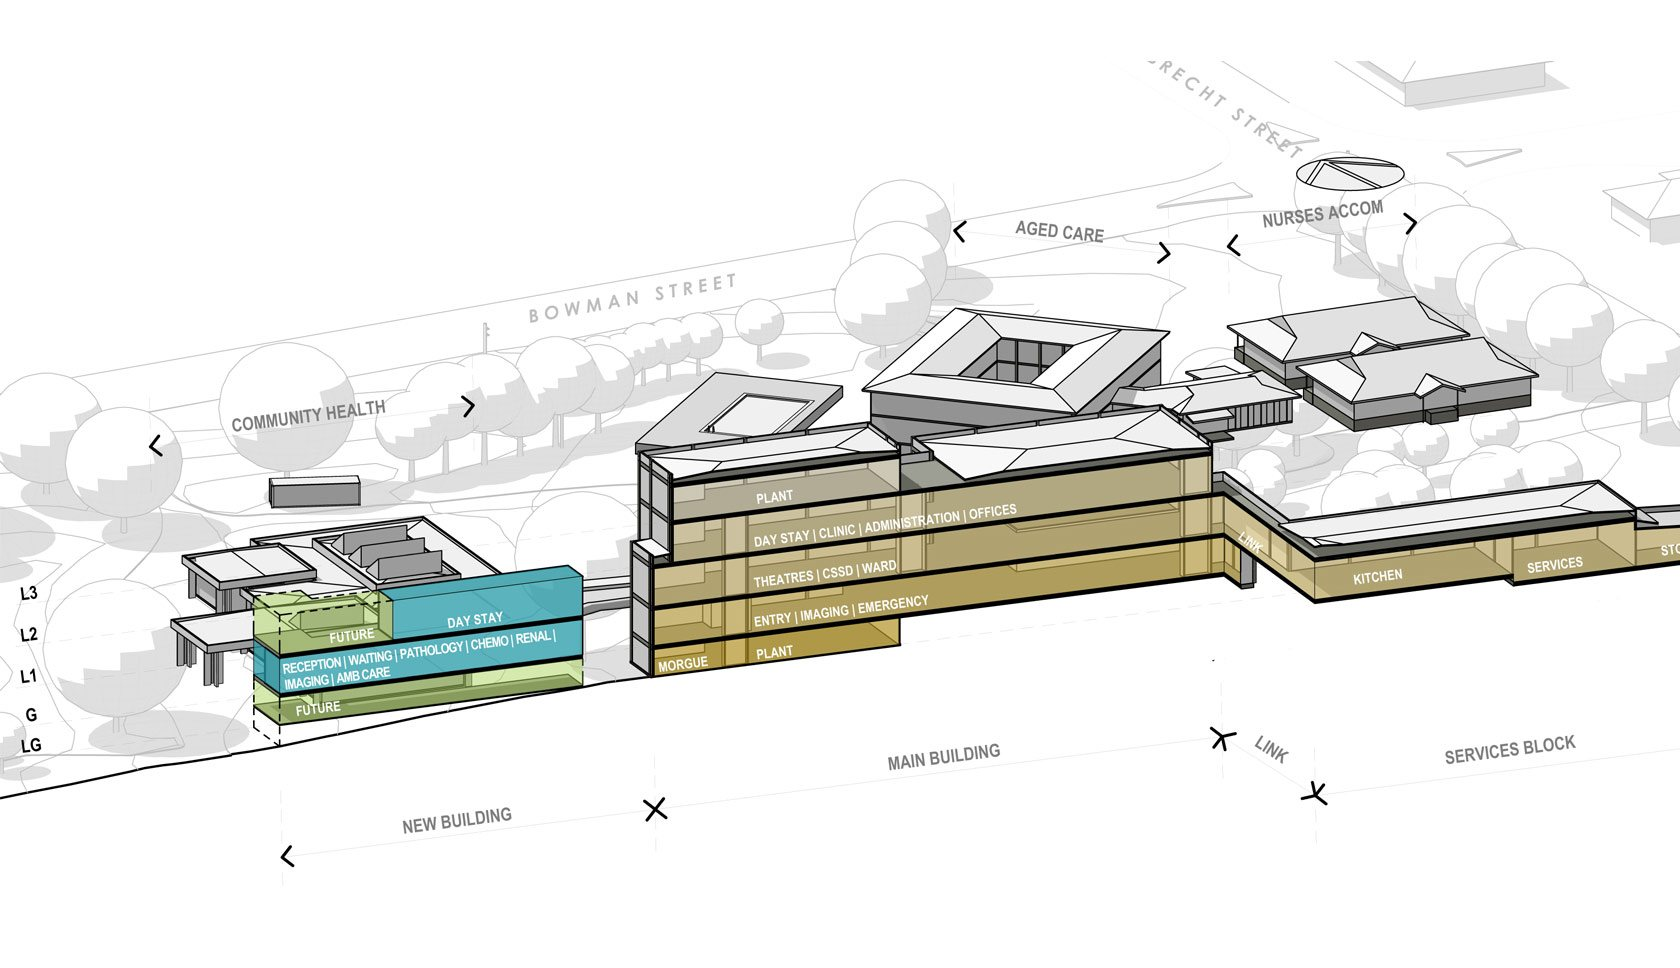 Muswellbrock hospital drawing of the hospital buildings aerial view